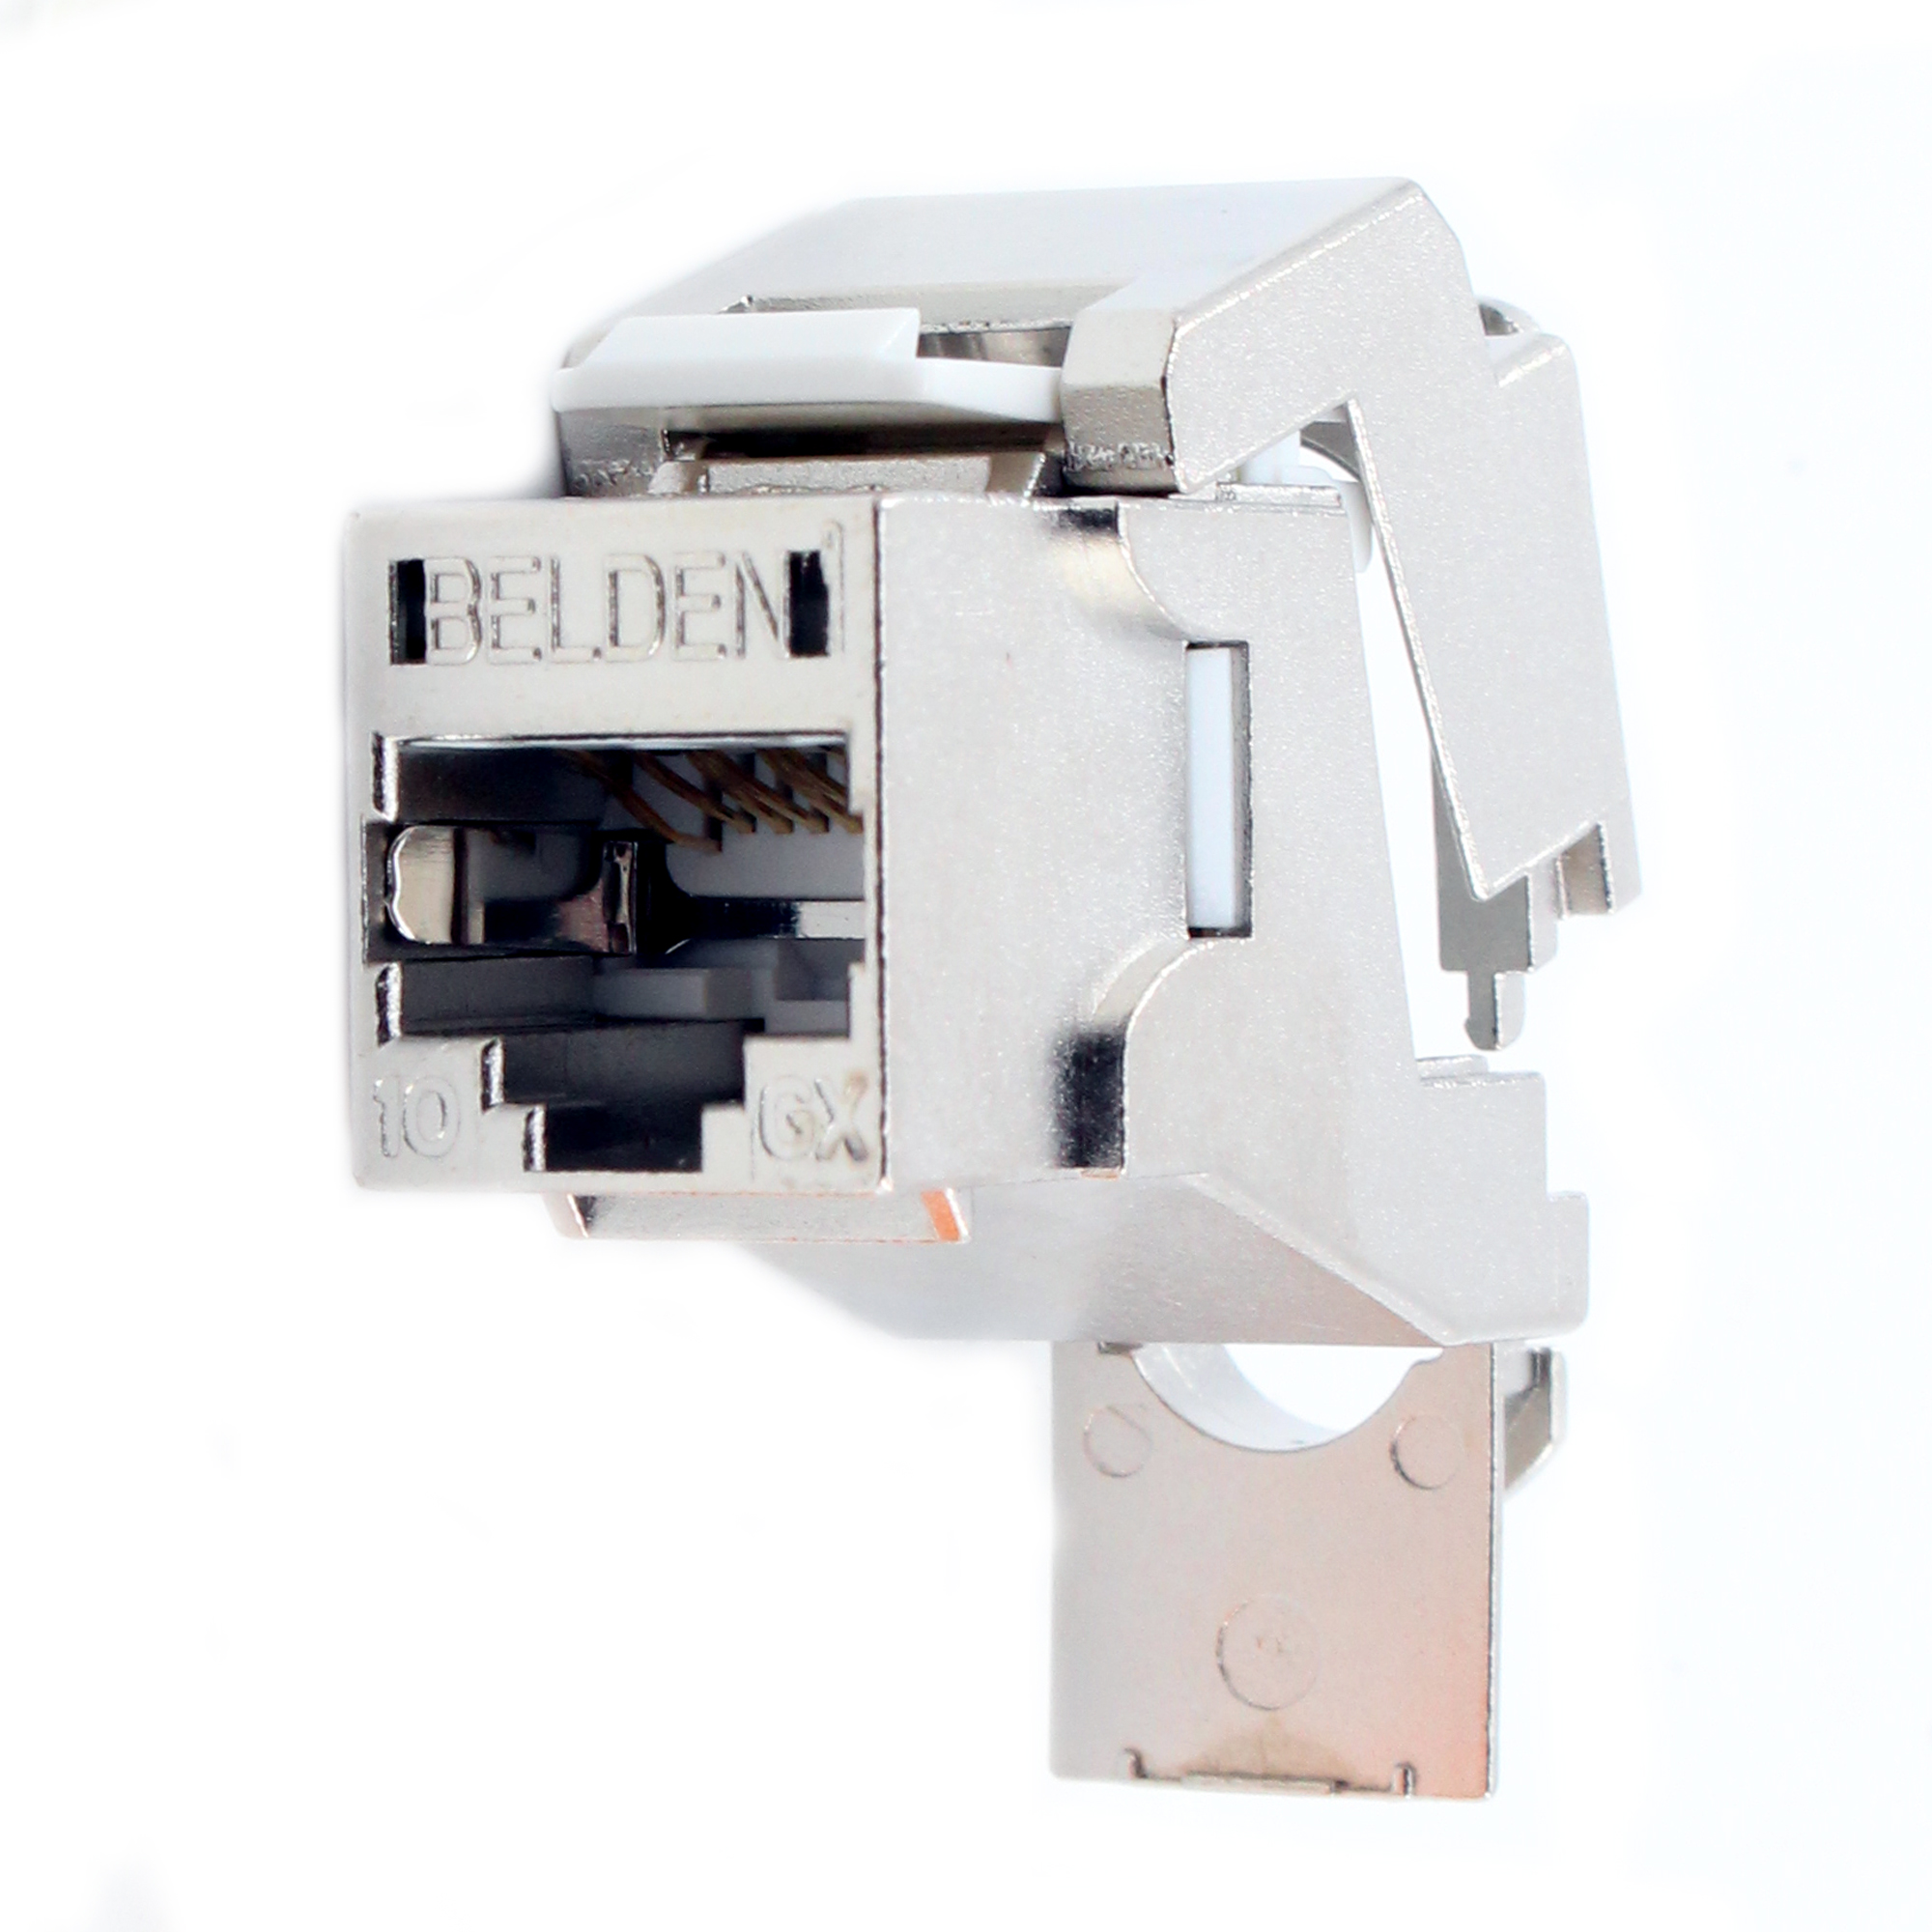 hight resolution of this auction is for 1 belden ax104562 keyconnect f upt shielded cat6a rj45 modular jack